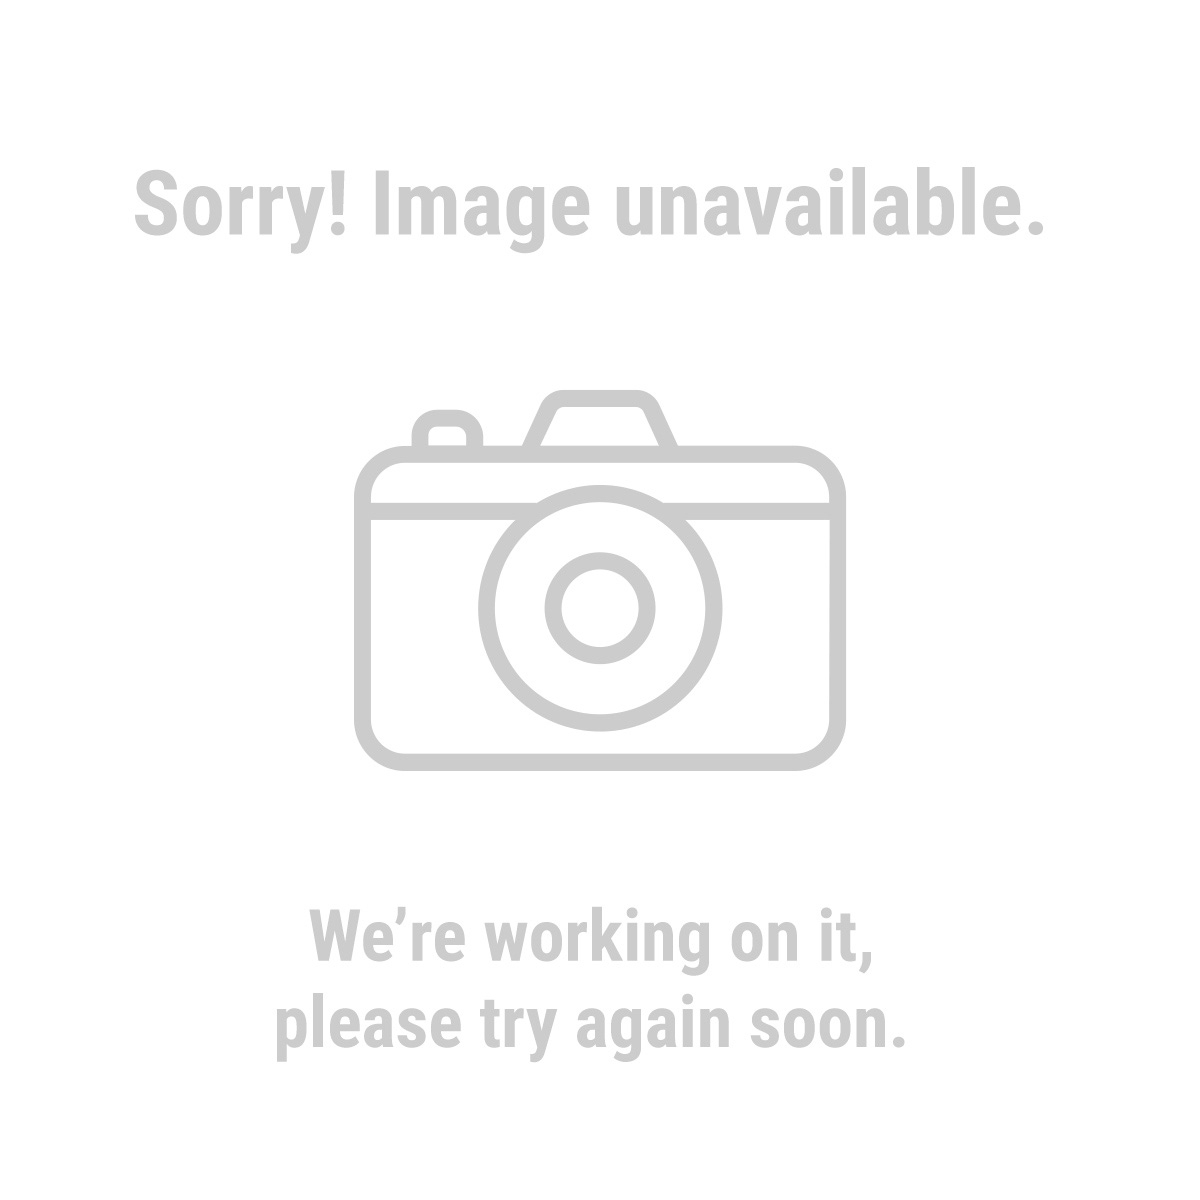 Storehouse 62778 20 Bin Medium Portable Parts Storage Case